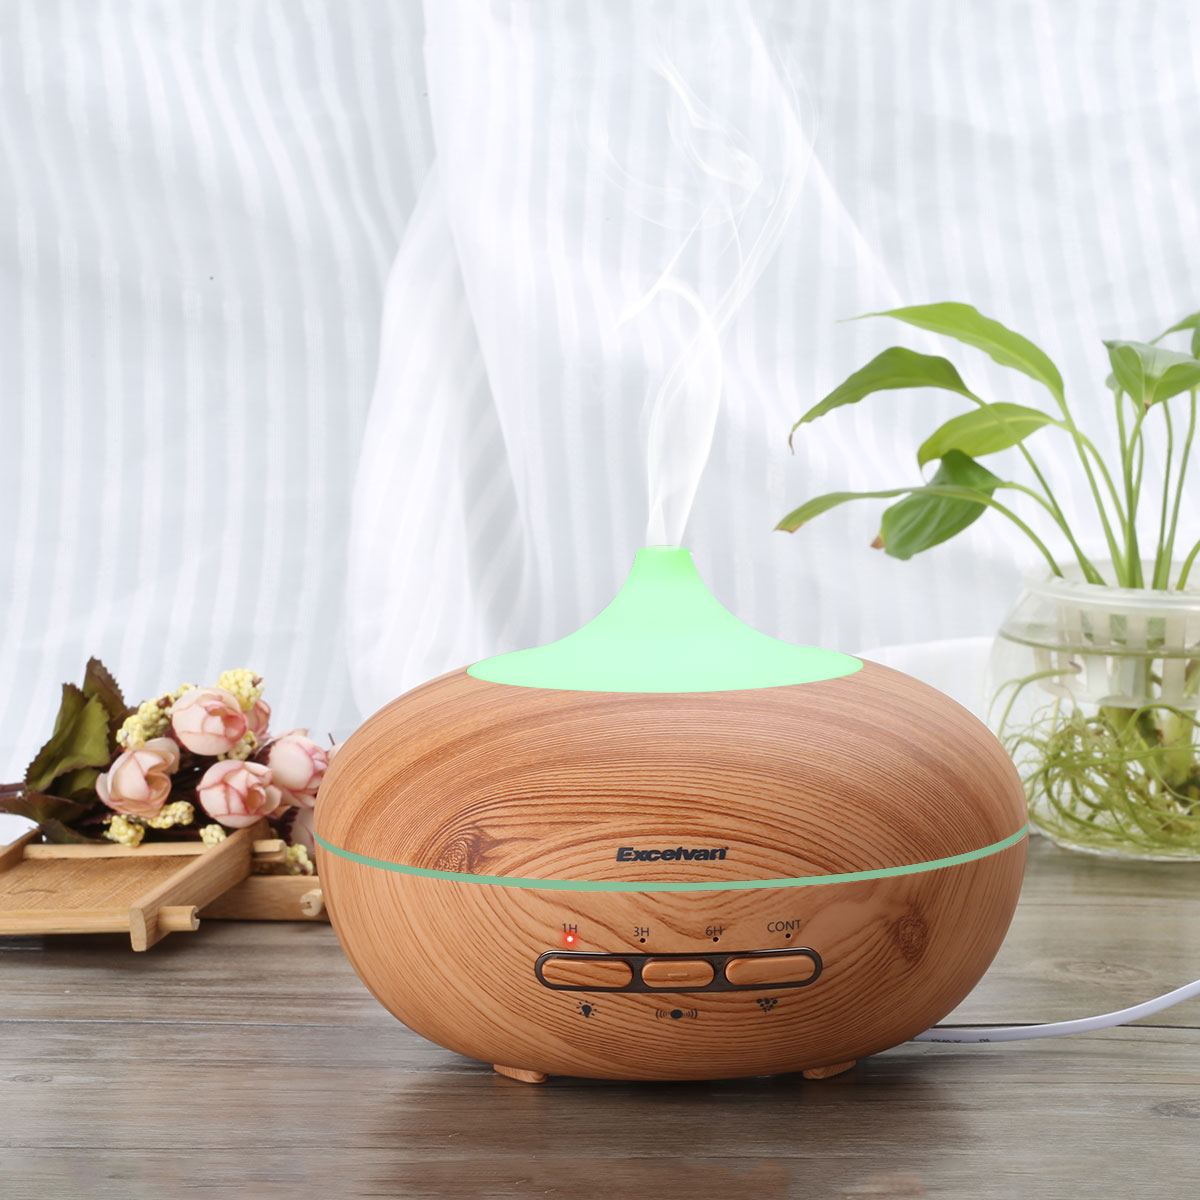 500ML Air Humidifier Star Projection Diffuser Ultrasonic Aroma Mist Purifier Essential Oil Purifier Portable Air Cleaner Night Light Great for Home Office Bedroom